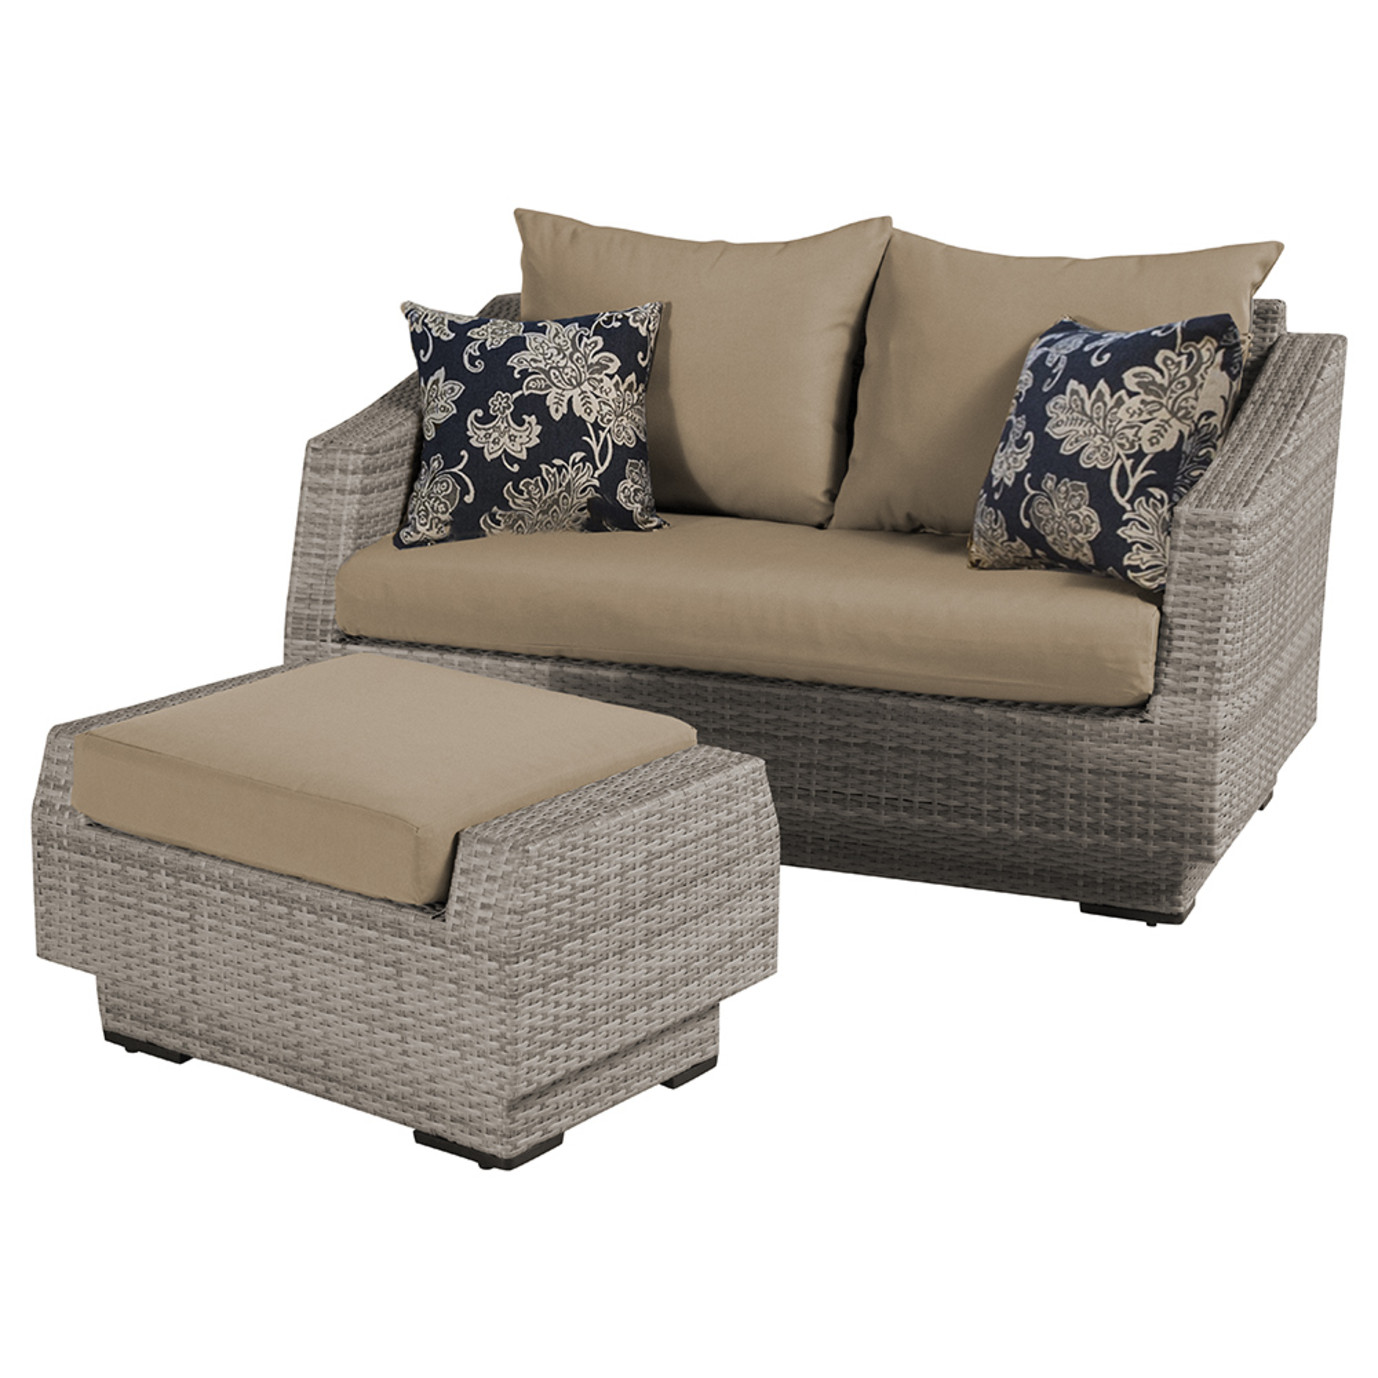 Cannes loveseat and ottoman delano beige rst brands for Delano promo code